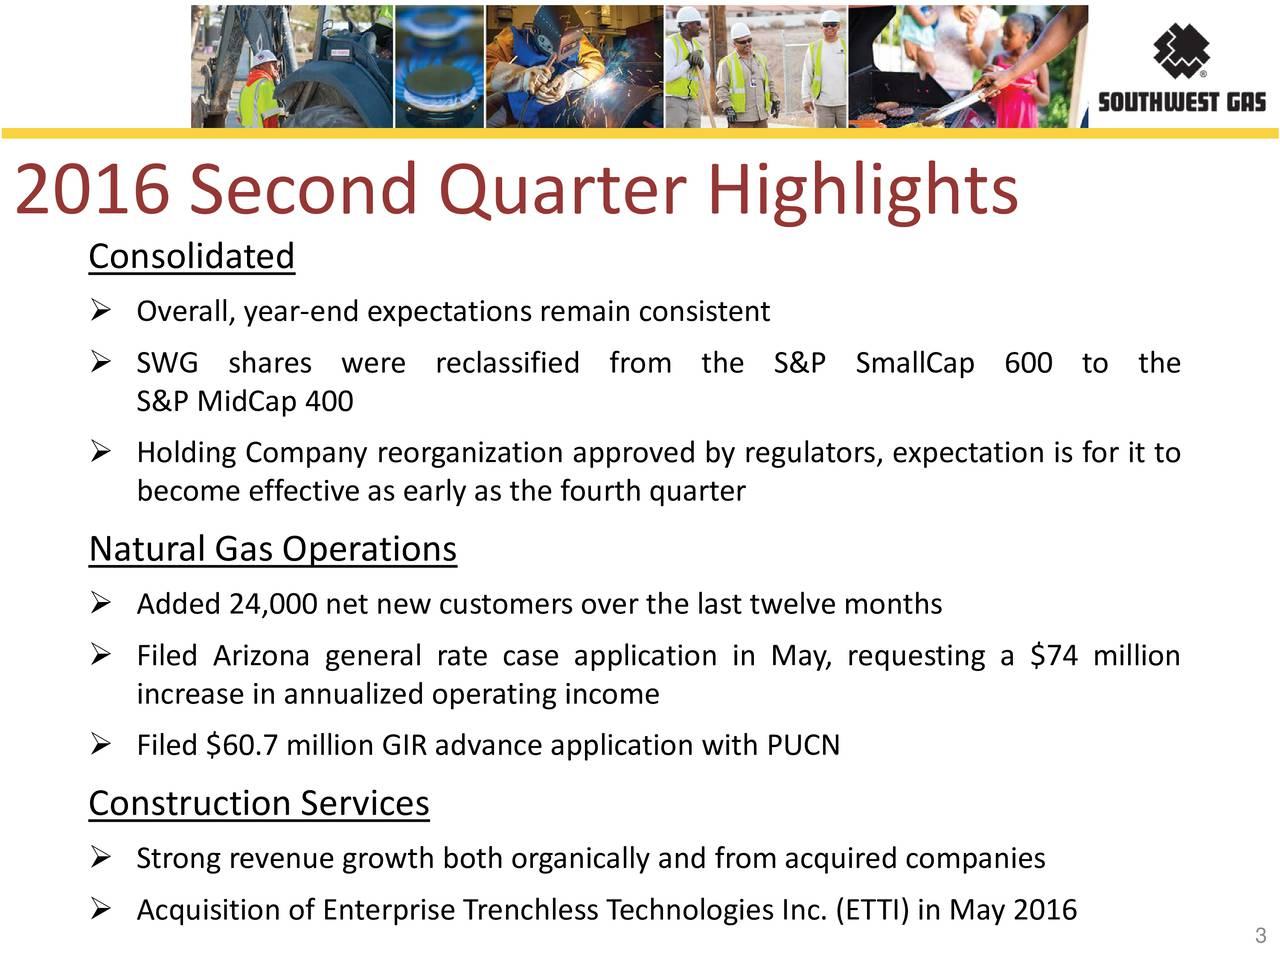 Consolidated Overall, year-end expectationsremain consistent SWG shares were reclassified from the S&P SmallCap 600 to the S&P MidCap 400 Holding Company reorganizationapproved by regulators,expectation is for it to become effectiveas early as the fourth quarter Natural Gas Operations Added 24,000 net new customers over the lasttwelvemonths Filed Arizona general rate case application in May, requesting a $74 million increase in annualized operating income Filed $60.7 million GIR advance application with PUCN Construction Services Strong revenue growthboth organically and fromacquired companies Acquisition of Enterprise Trenchless Technologies Inc. (ETTI) in May 2016